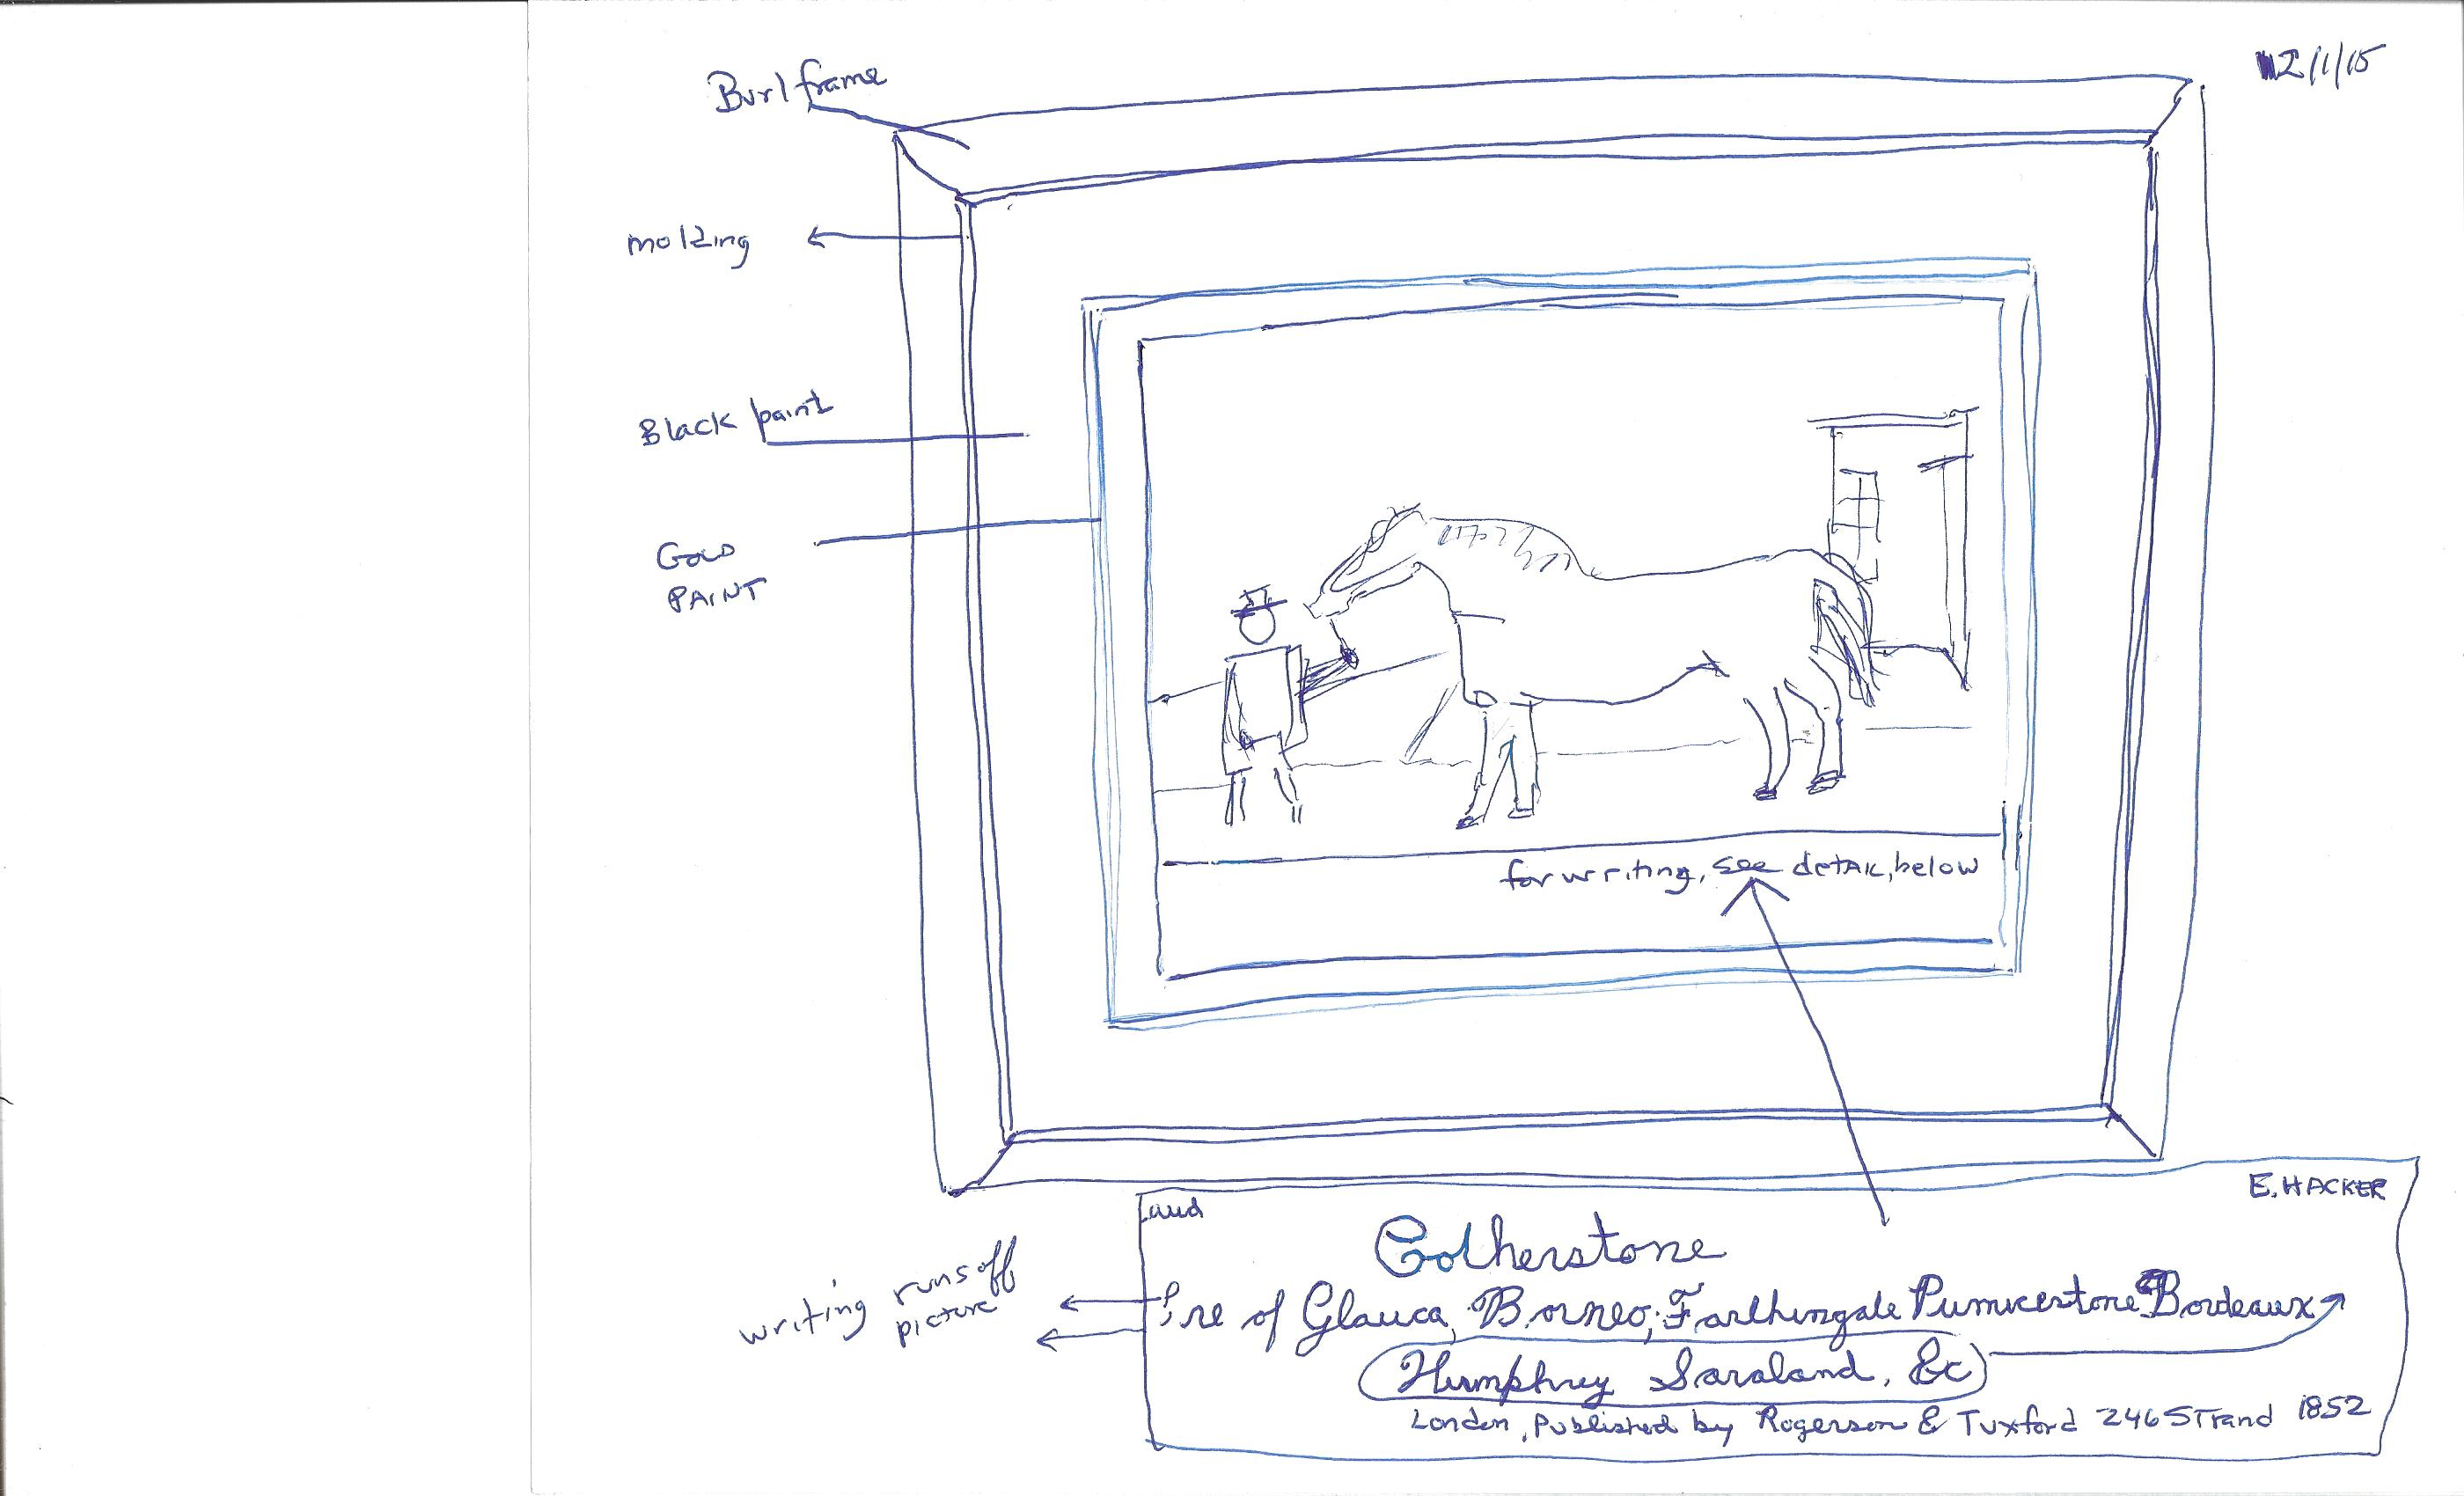 GLASS painting- jpeg copy of Cothrestone drawing and verbiage-Scan0006 (2).jpg